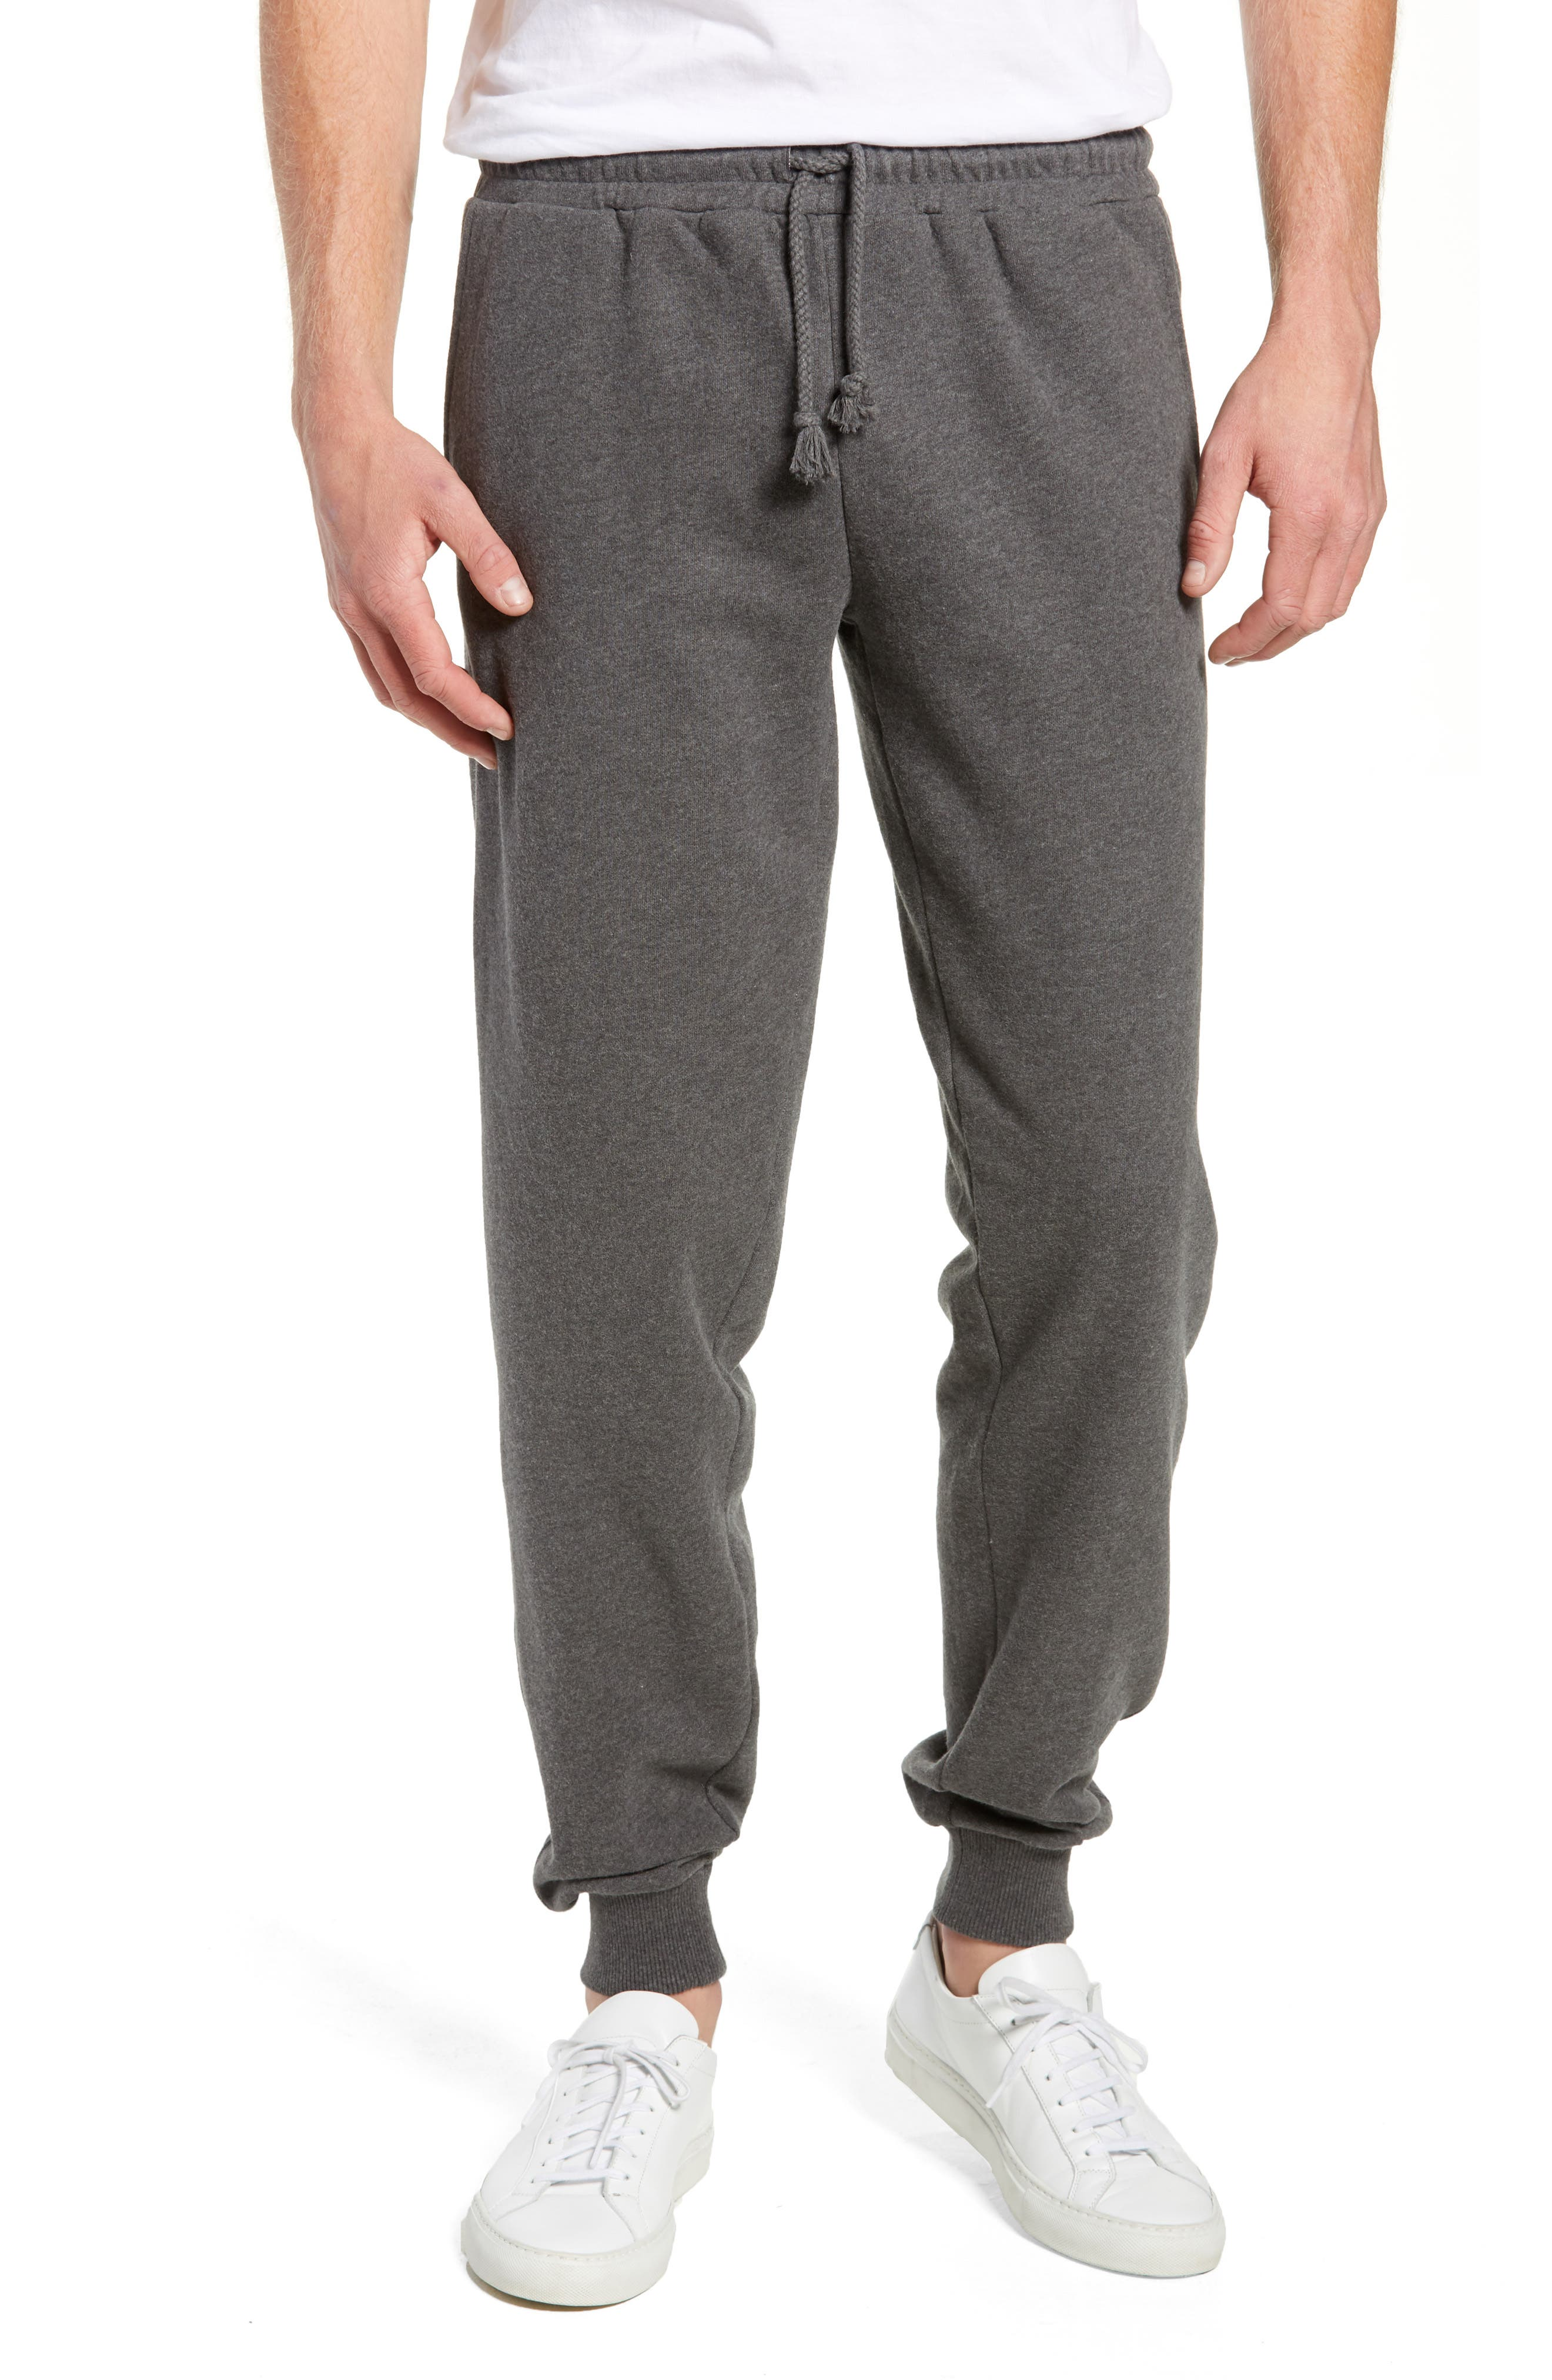 KnowledgeCotton Mélange Sweatpants,                         Main,                         color, GREY MELANGE